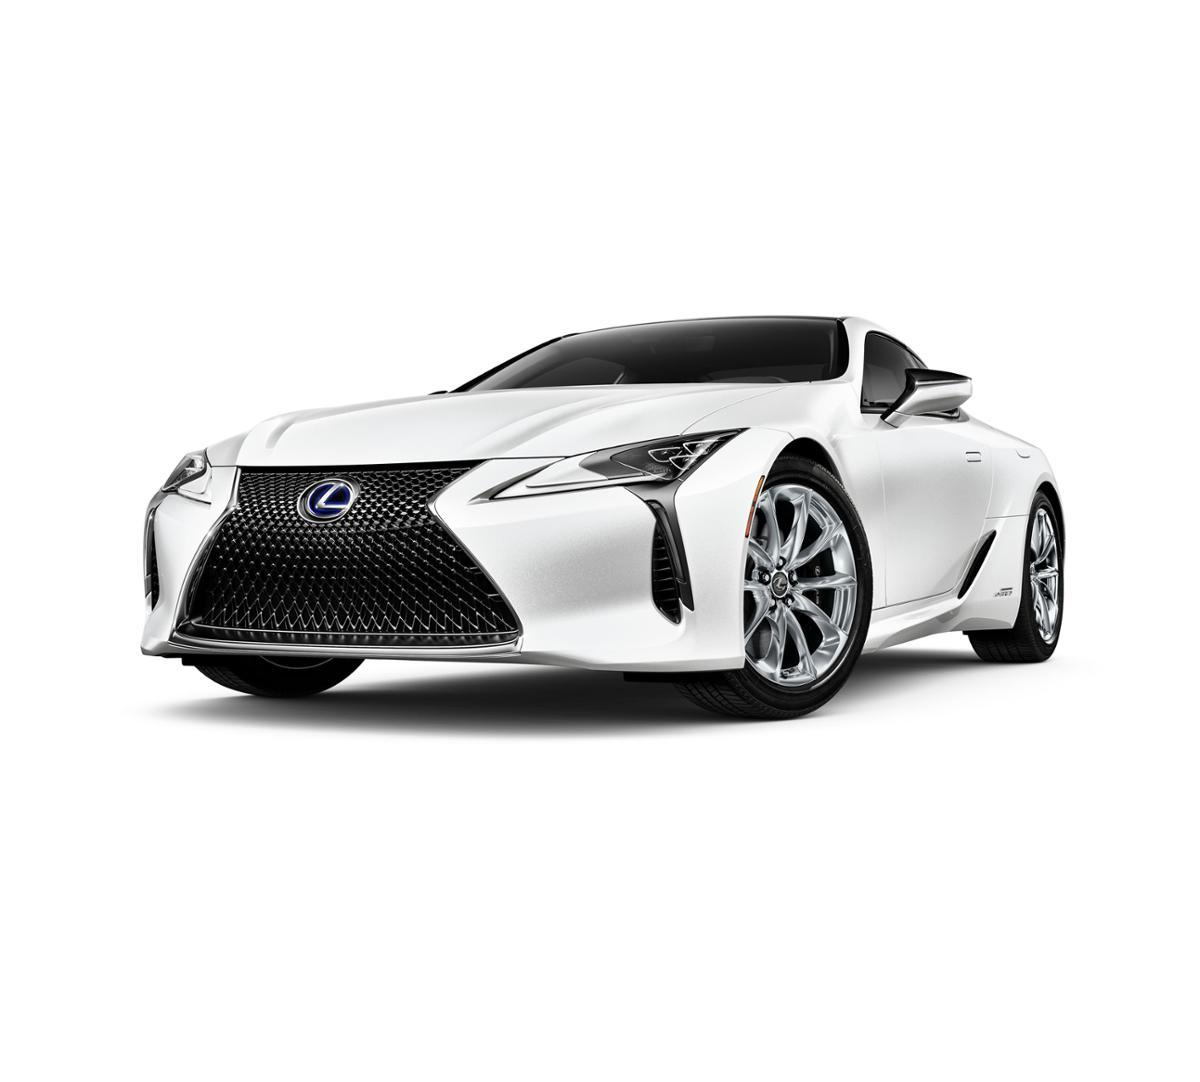 2019 Lexus LC 500h Vehicle Photo in Santa Monica, CA 90404